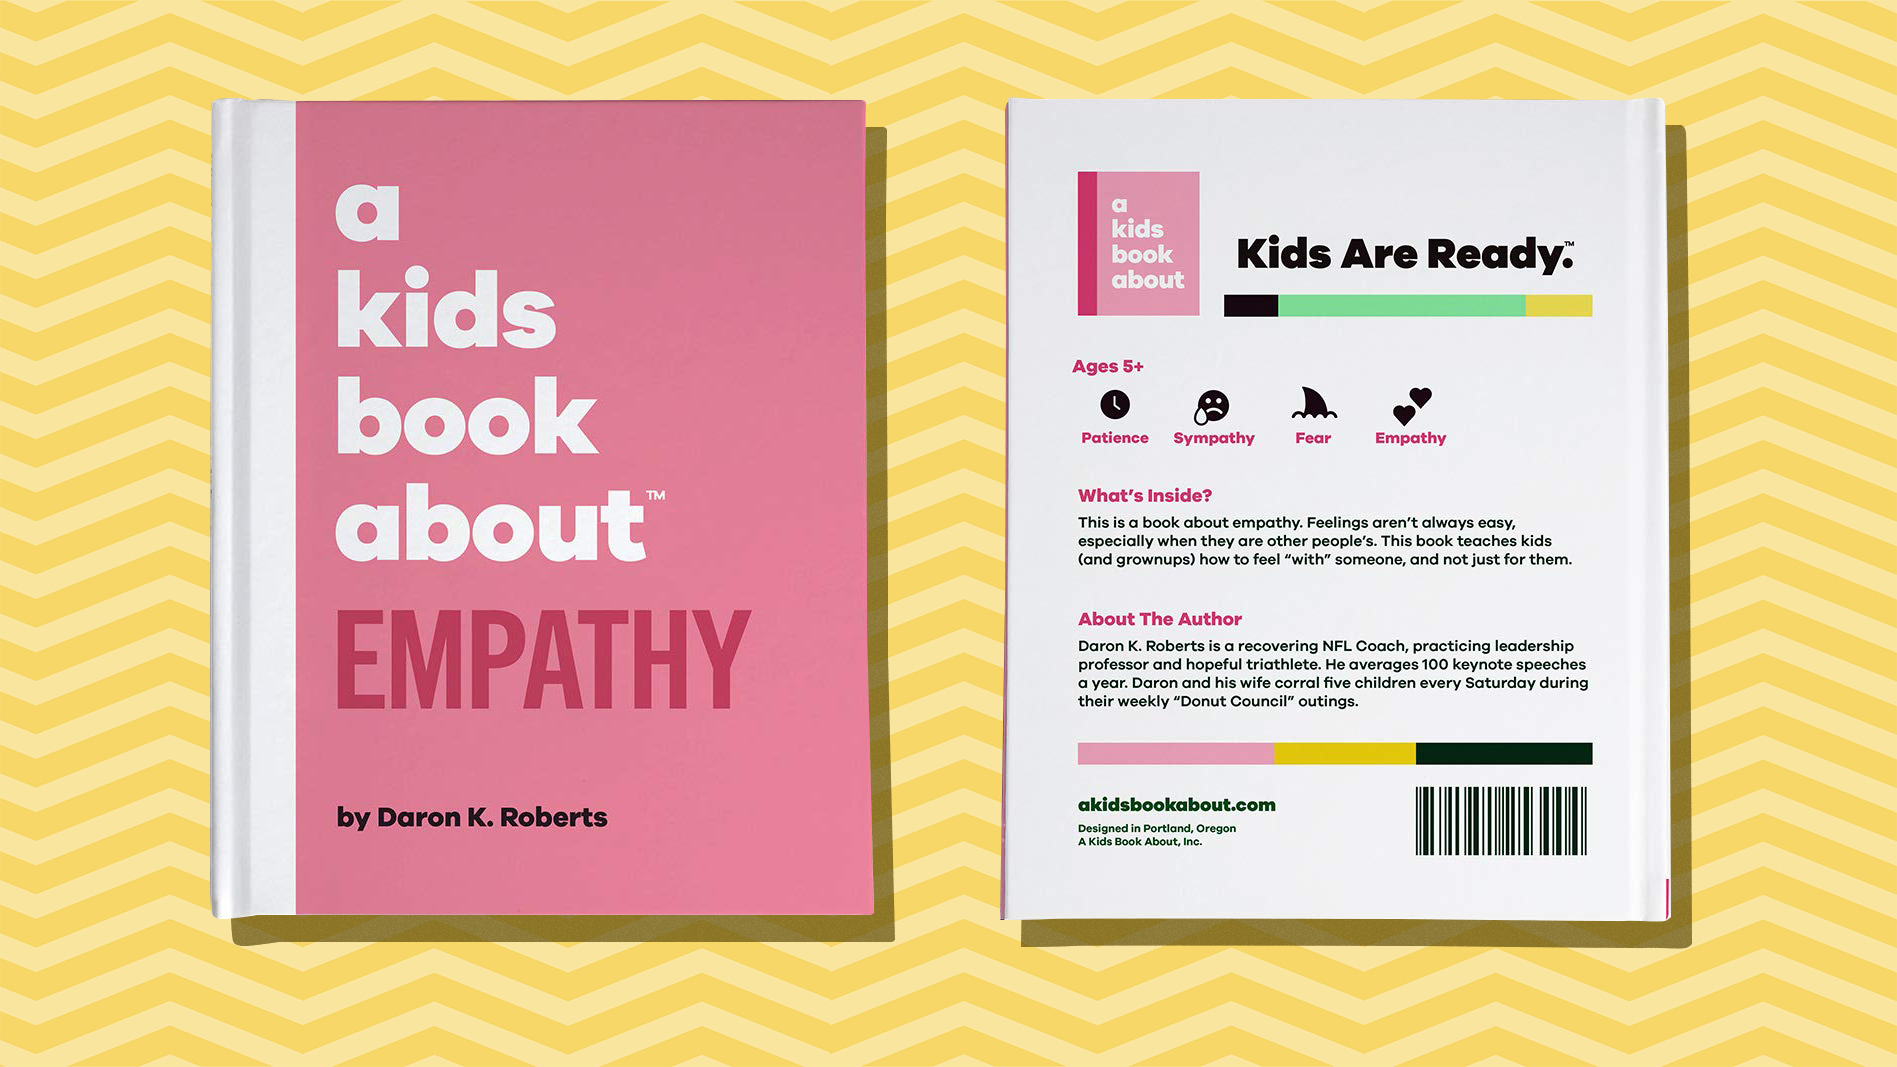 Best gifts for kids - empathy book on yellow background tout